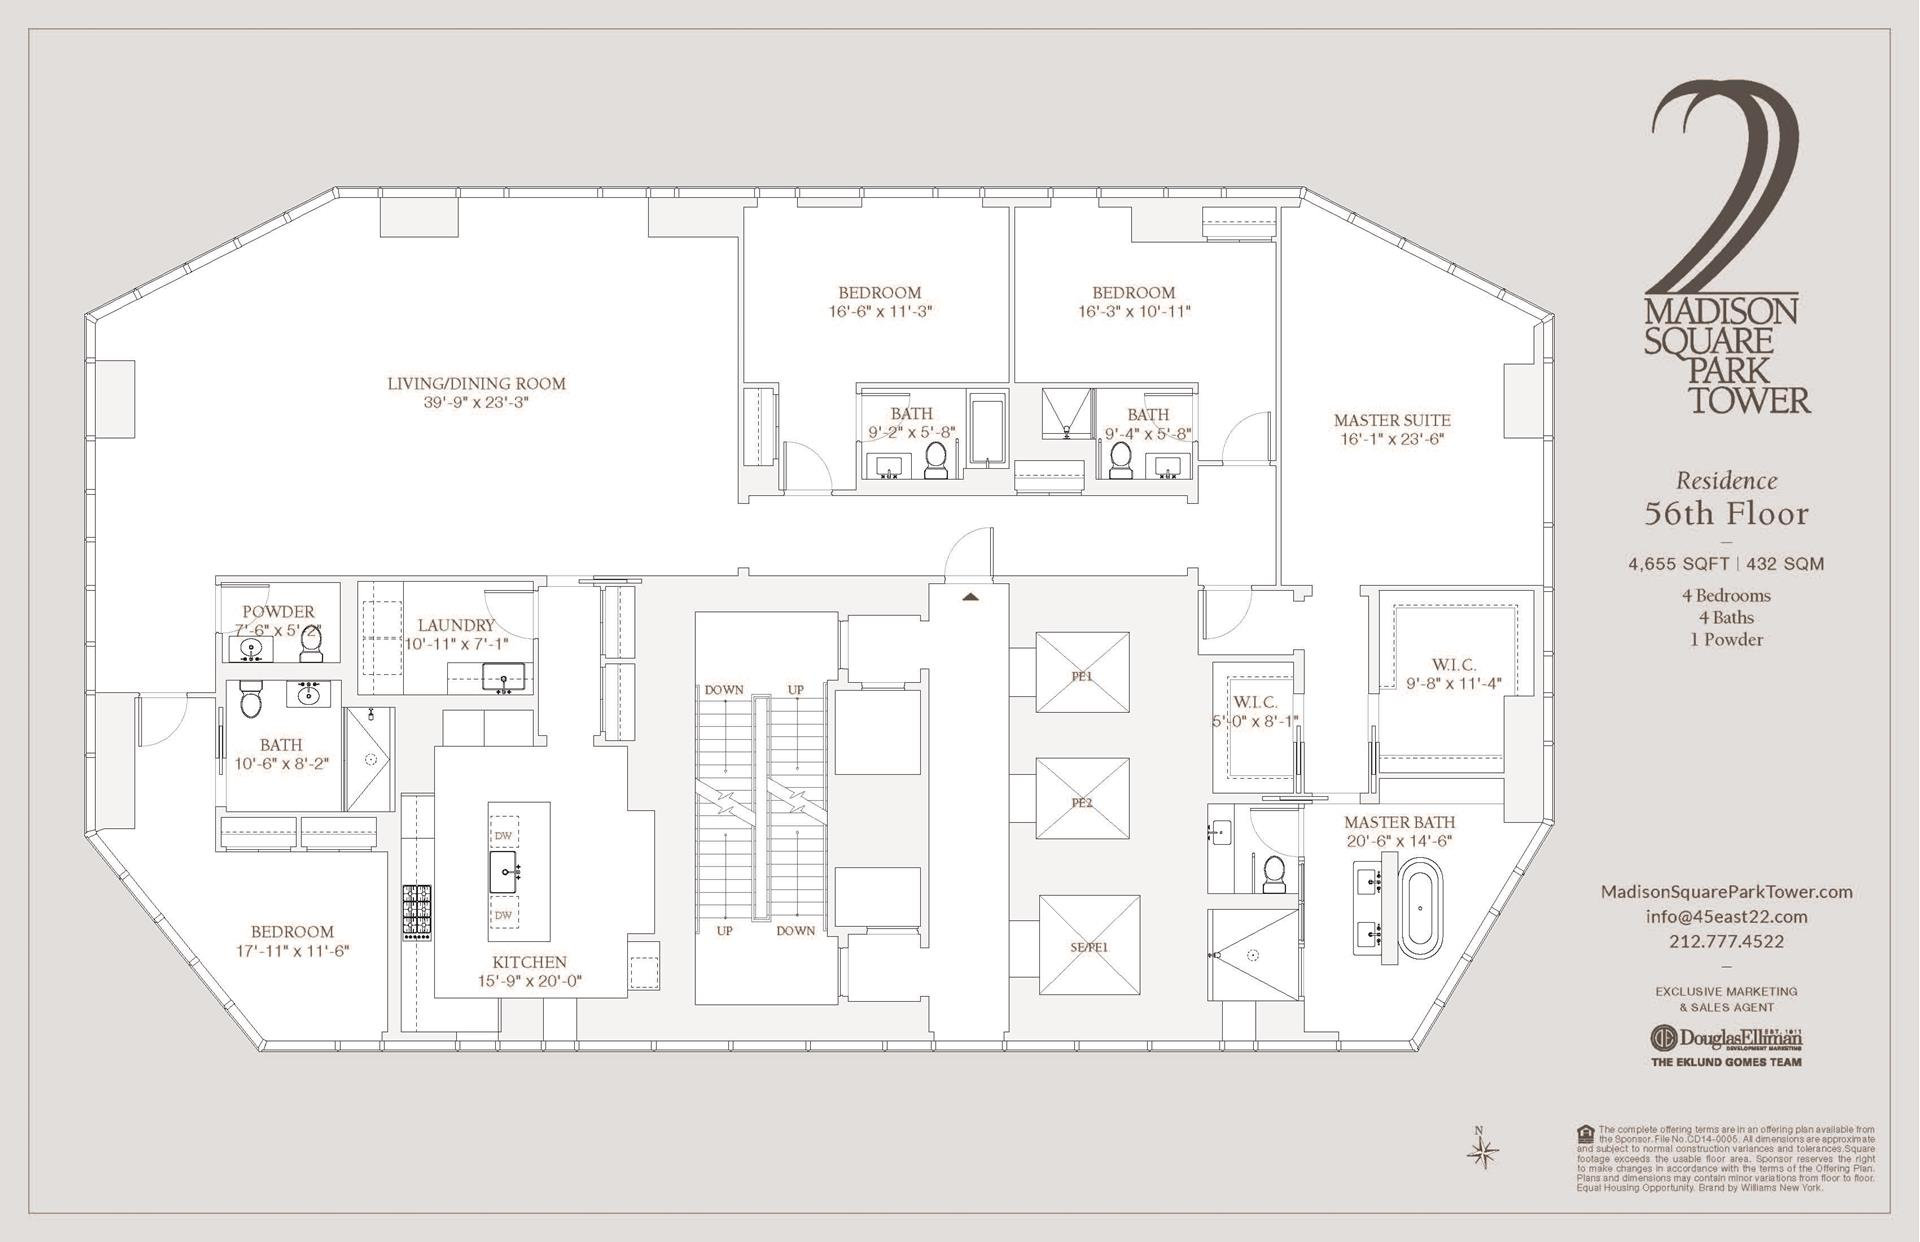 Floor plan of Madison Square Park Tower, 45 East 22nd St, 56FL - Flatiron District, New York